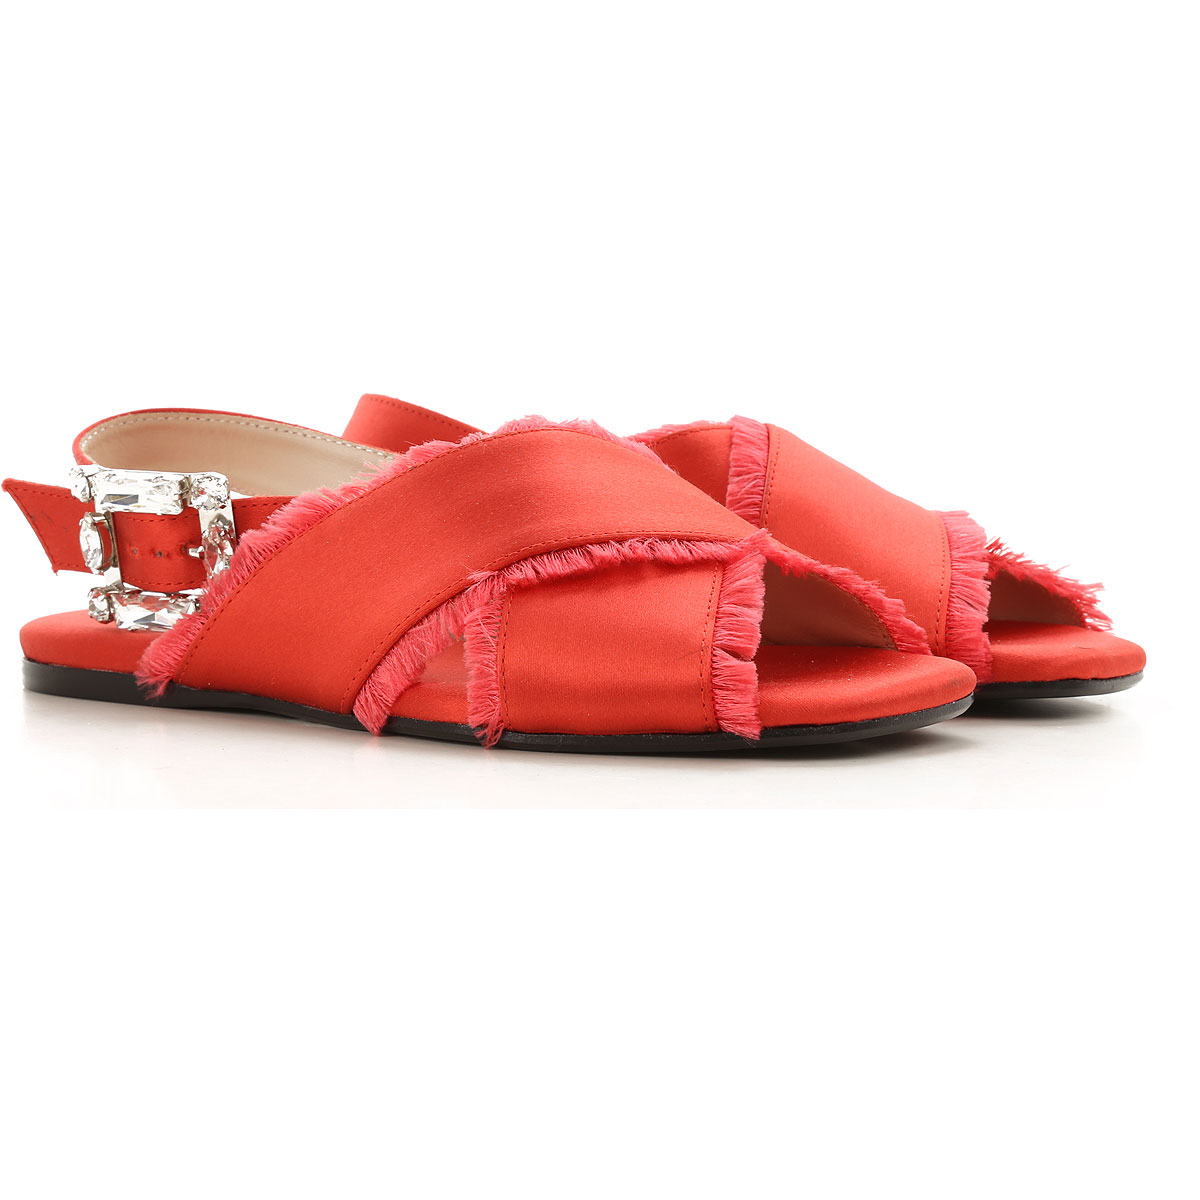 Anna Baiguera Womens Shoes On Sale in Outlet, Coral, Leather, 2019, 8 9